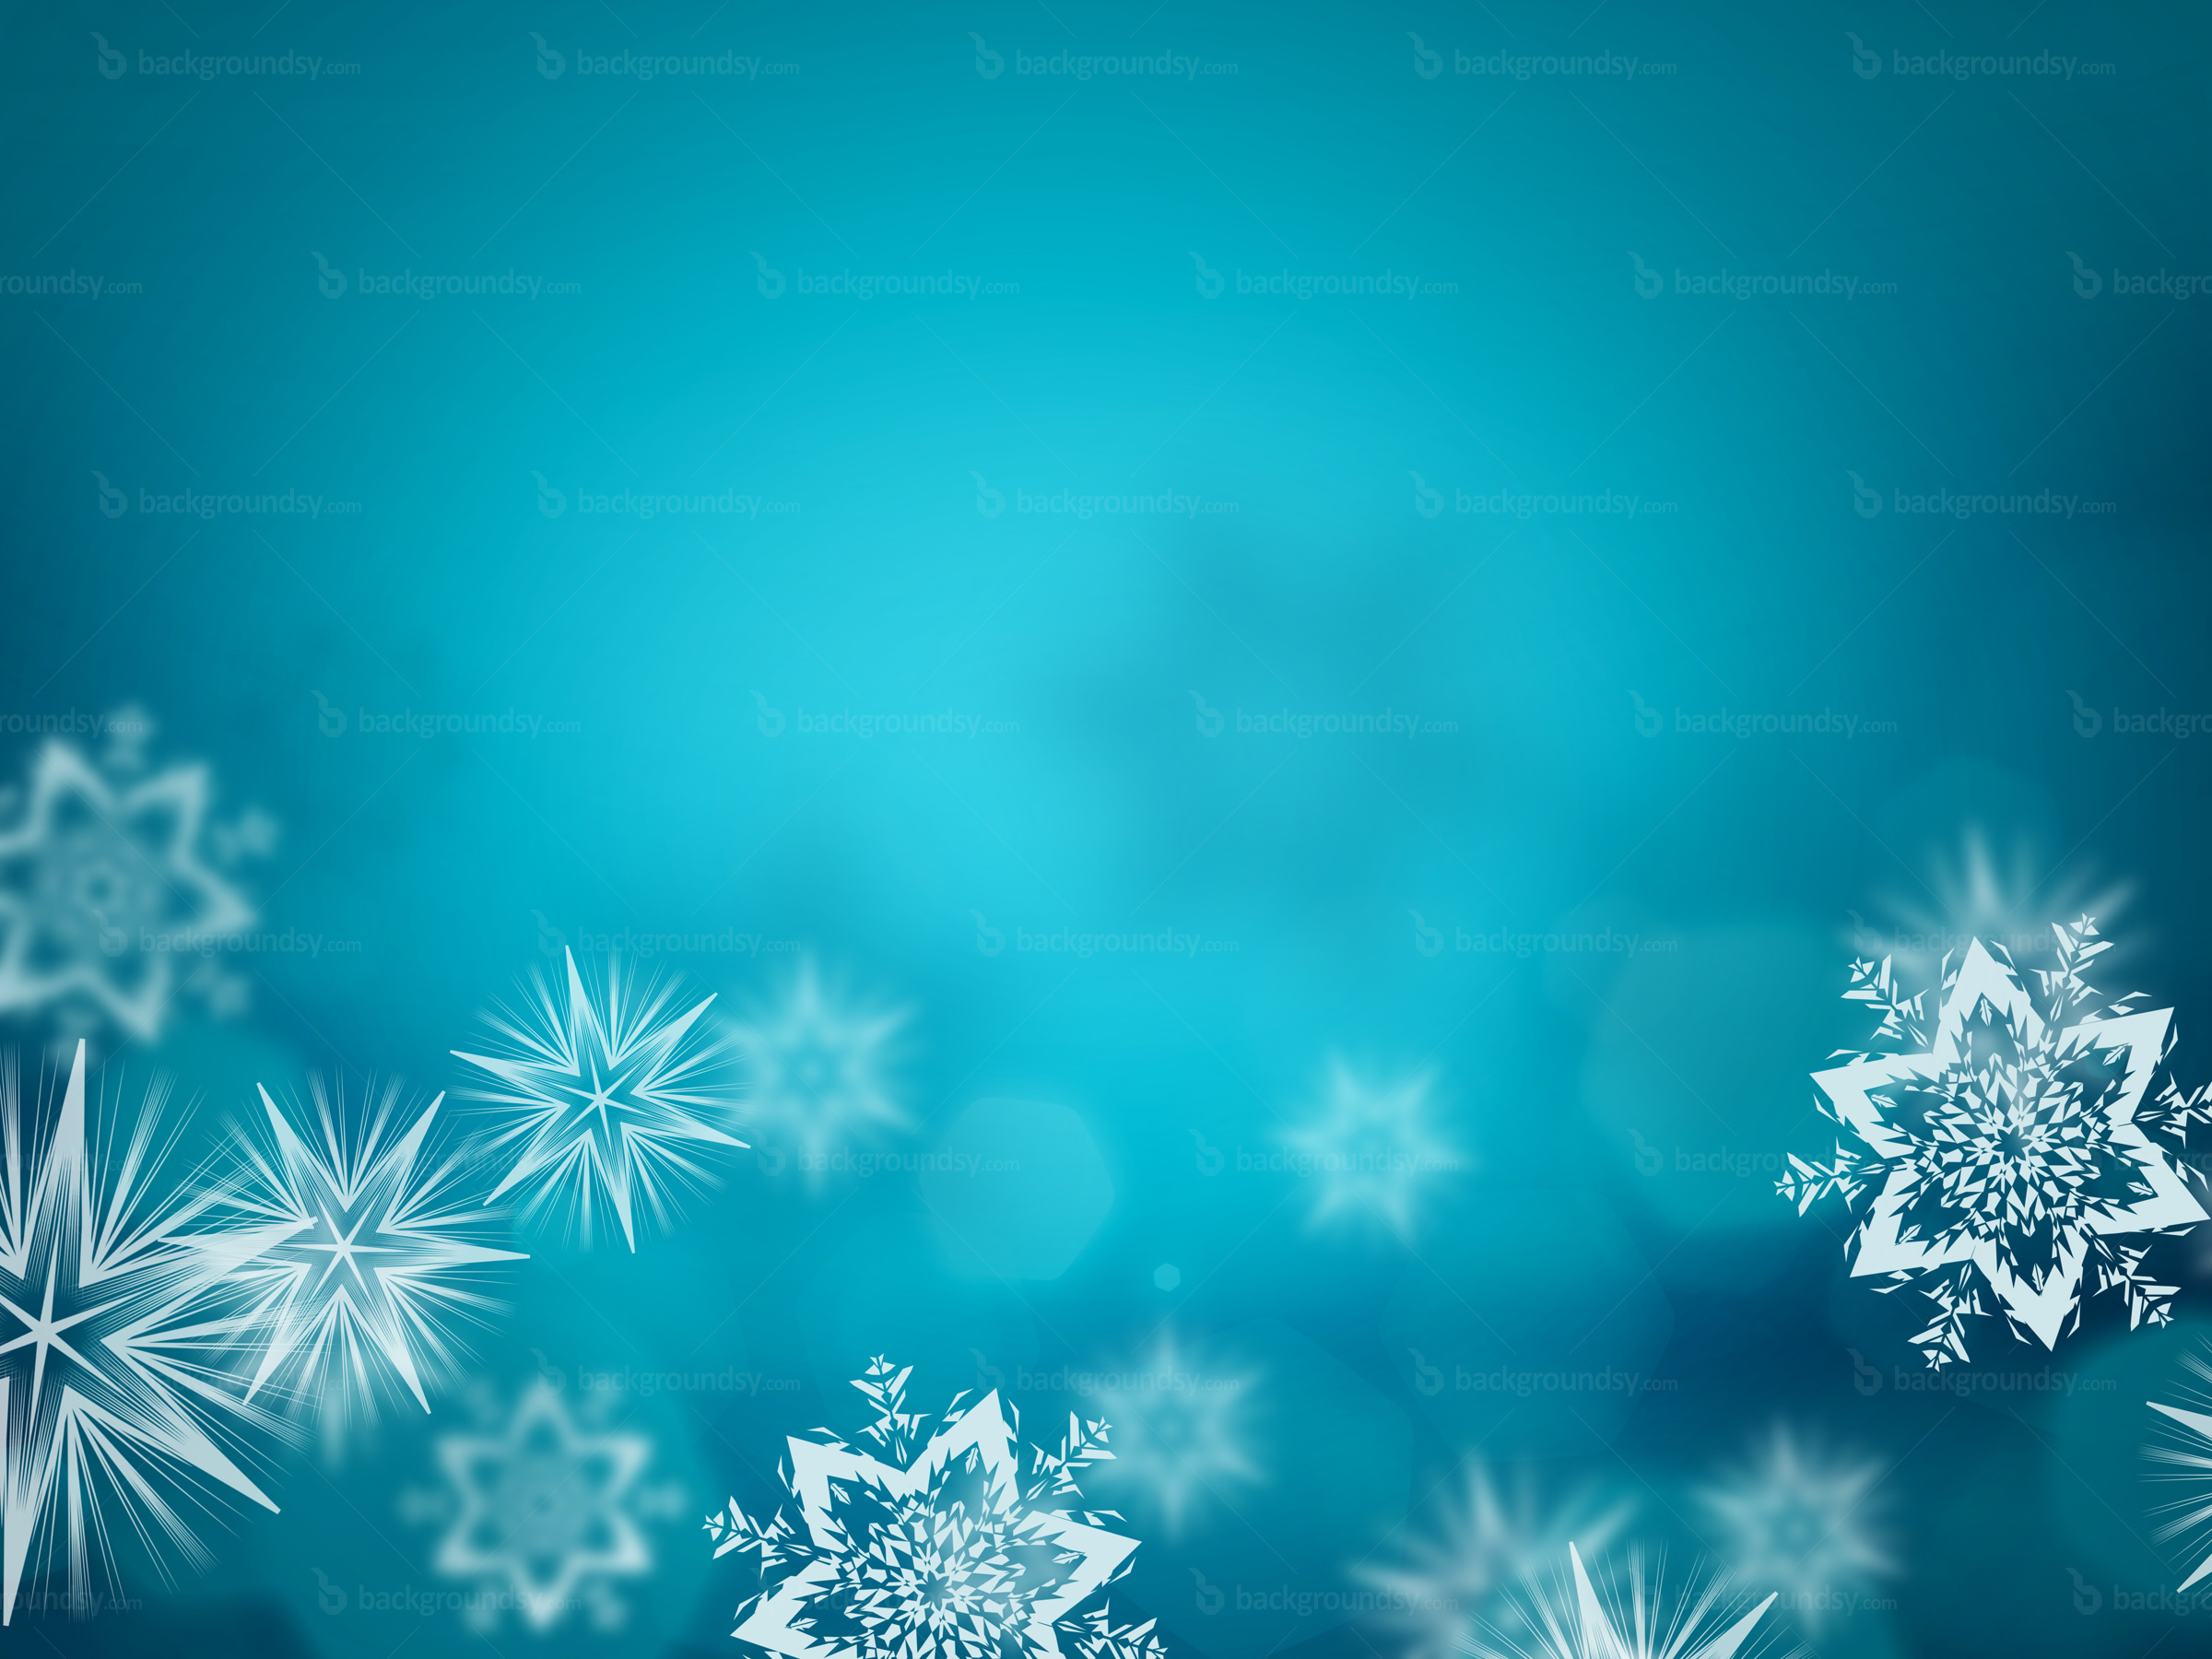 winter snowflake iphone wallpaper